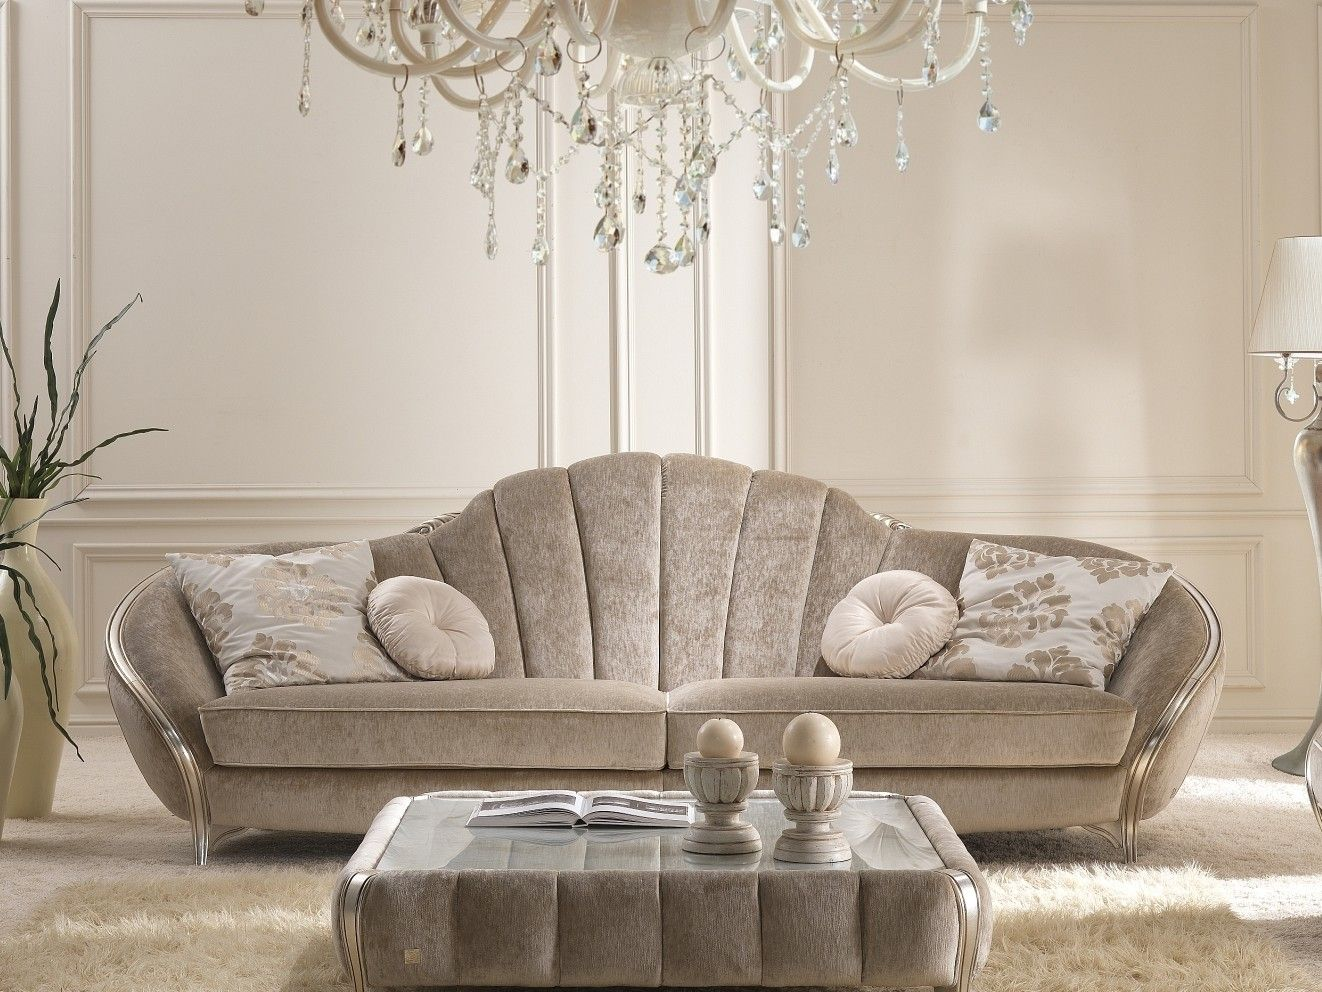 Paradise Sofa Paradise Collection By Gold Confort In 2020 Fabric Sofa Design Living Room Sofa Modern Sofa Designs